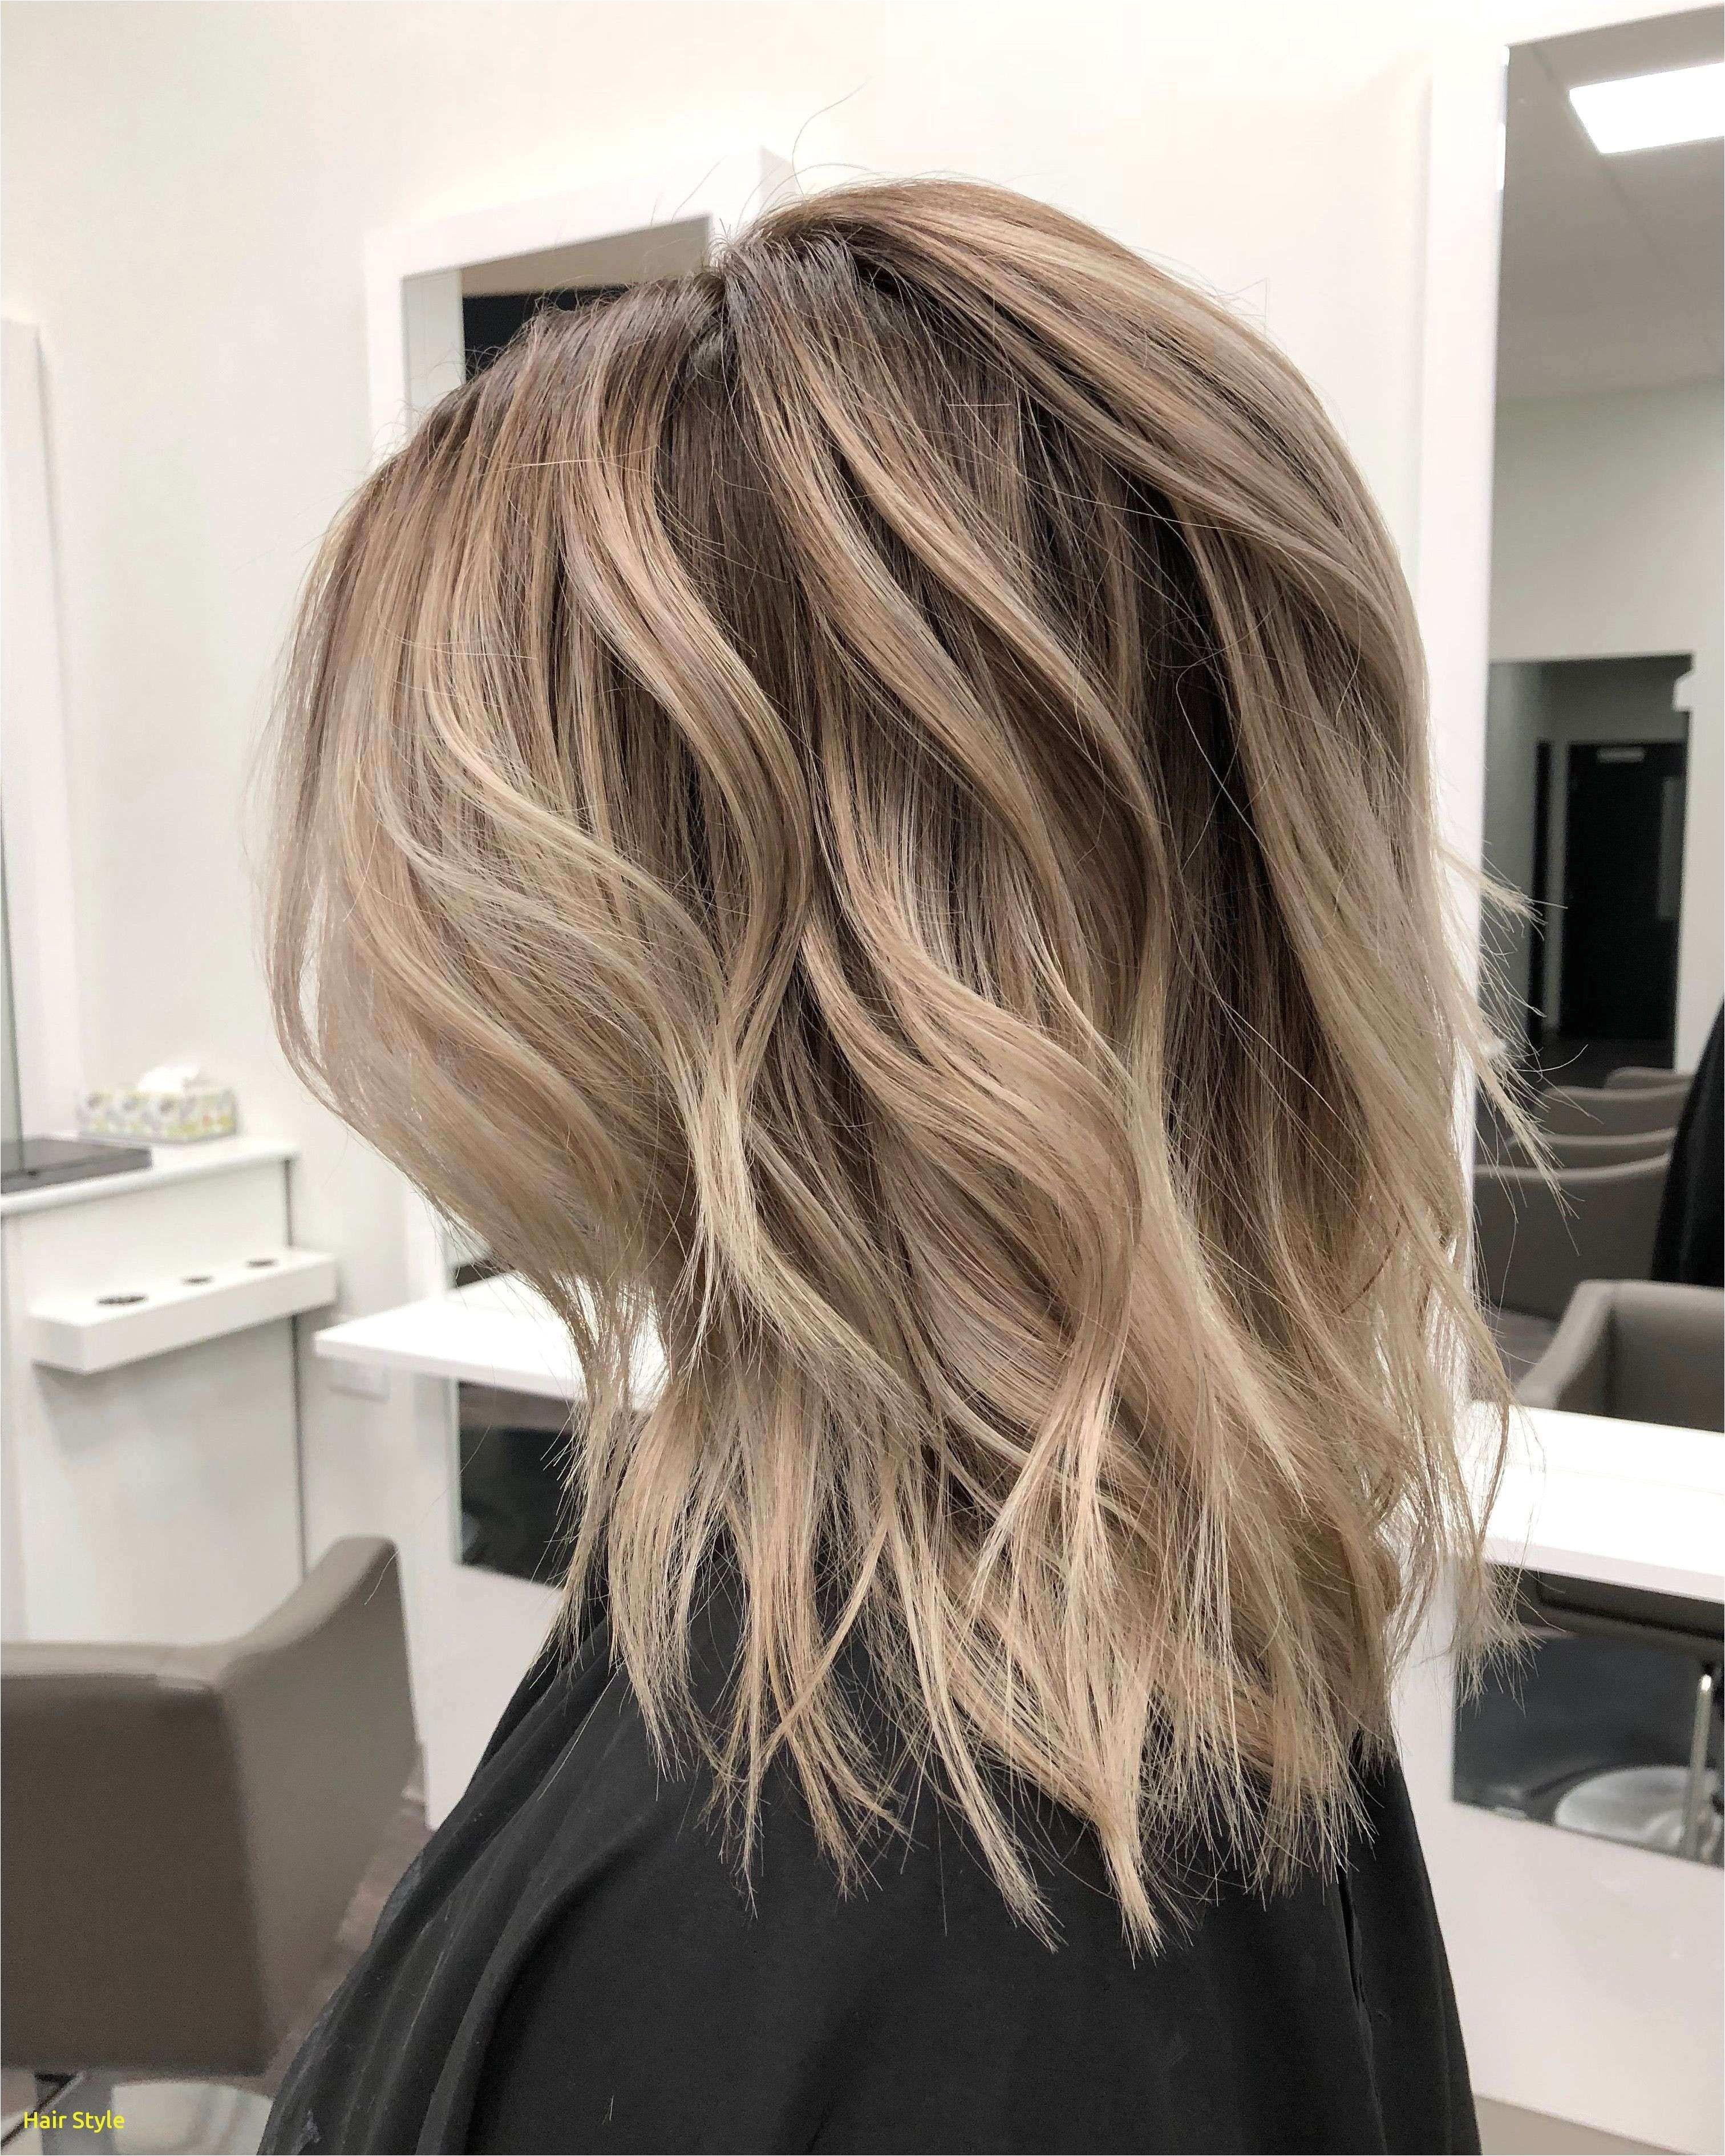 Different Hairstyles for Girls with Long Hair Fresh Lovely Layered Hairstyles for Women with Long Hair